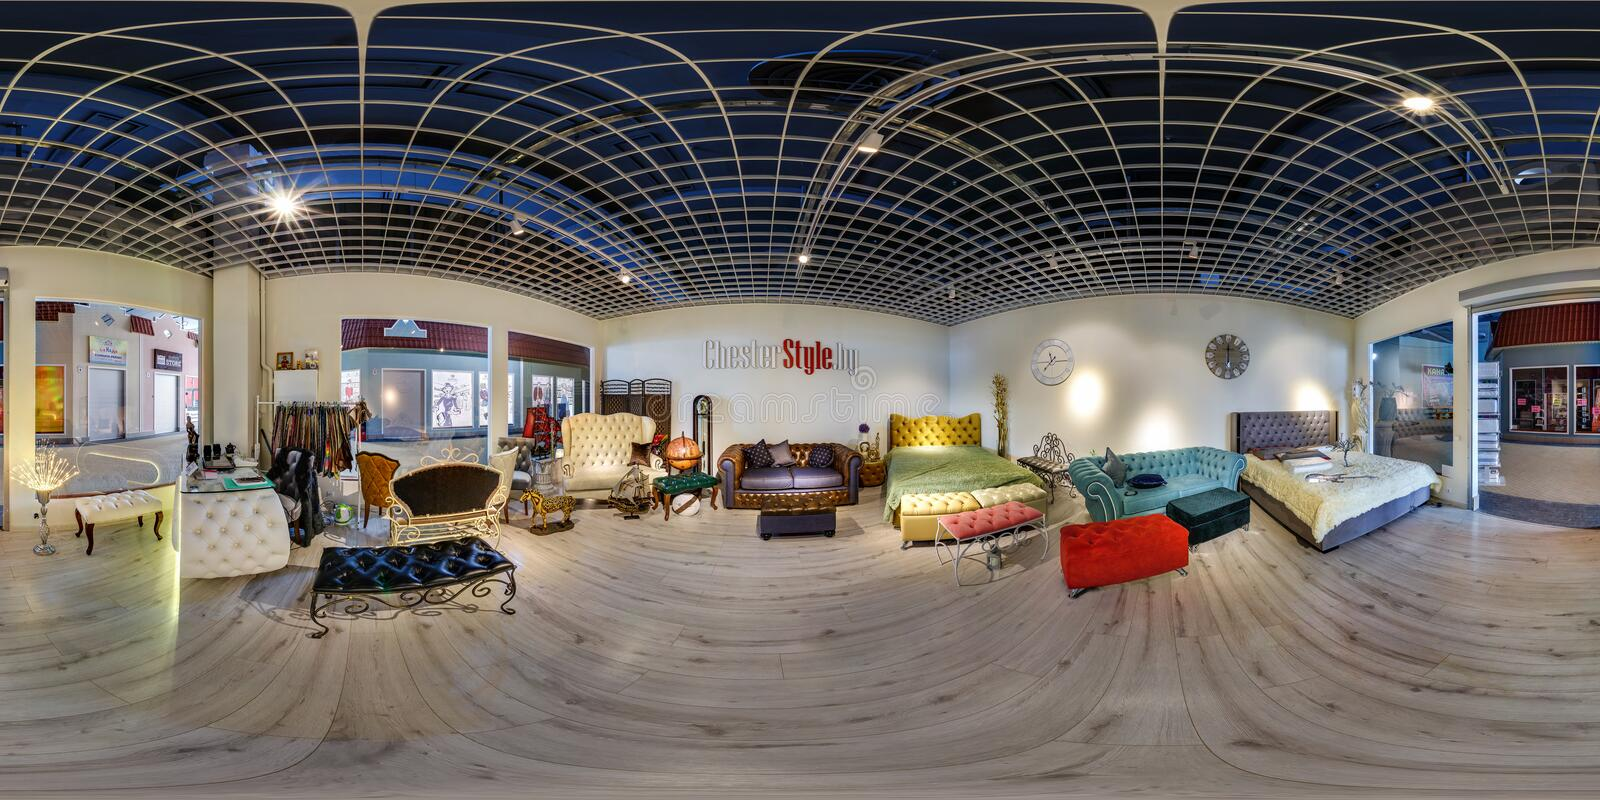 MINSK, BELARUS - MAY 2018: Full spherical seamless panorama 360 degrees in interior of shop with elite furniture showroom store in stock images